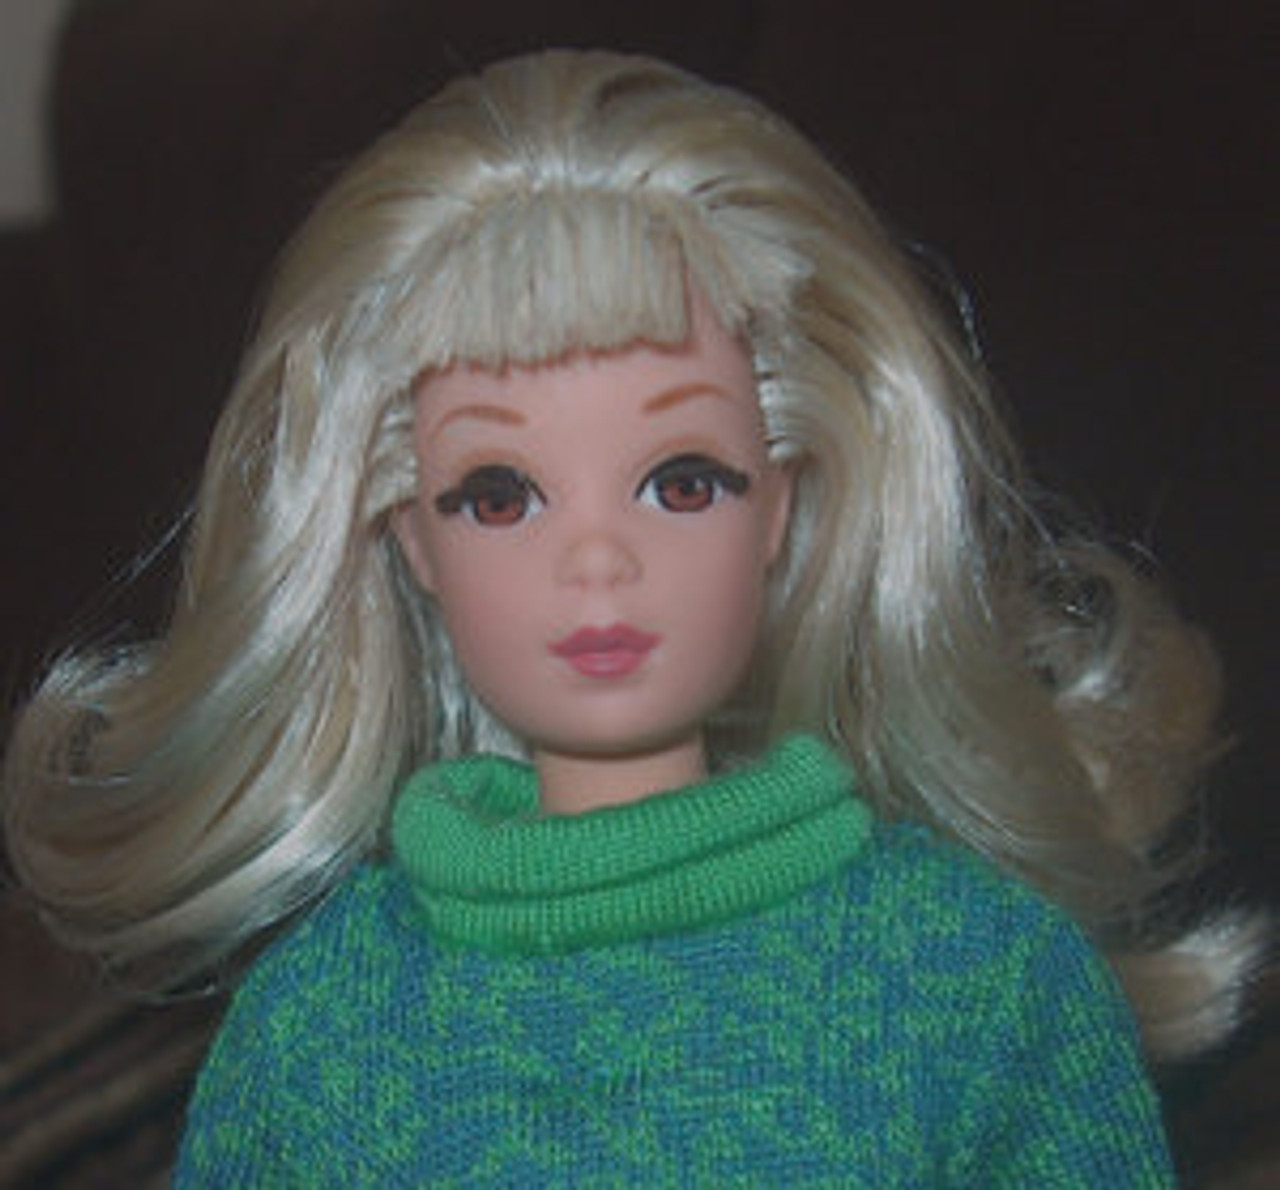 Limited Blond 74 KatSilk Saran Doll Hair